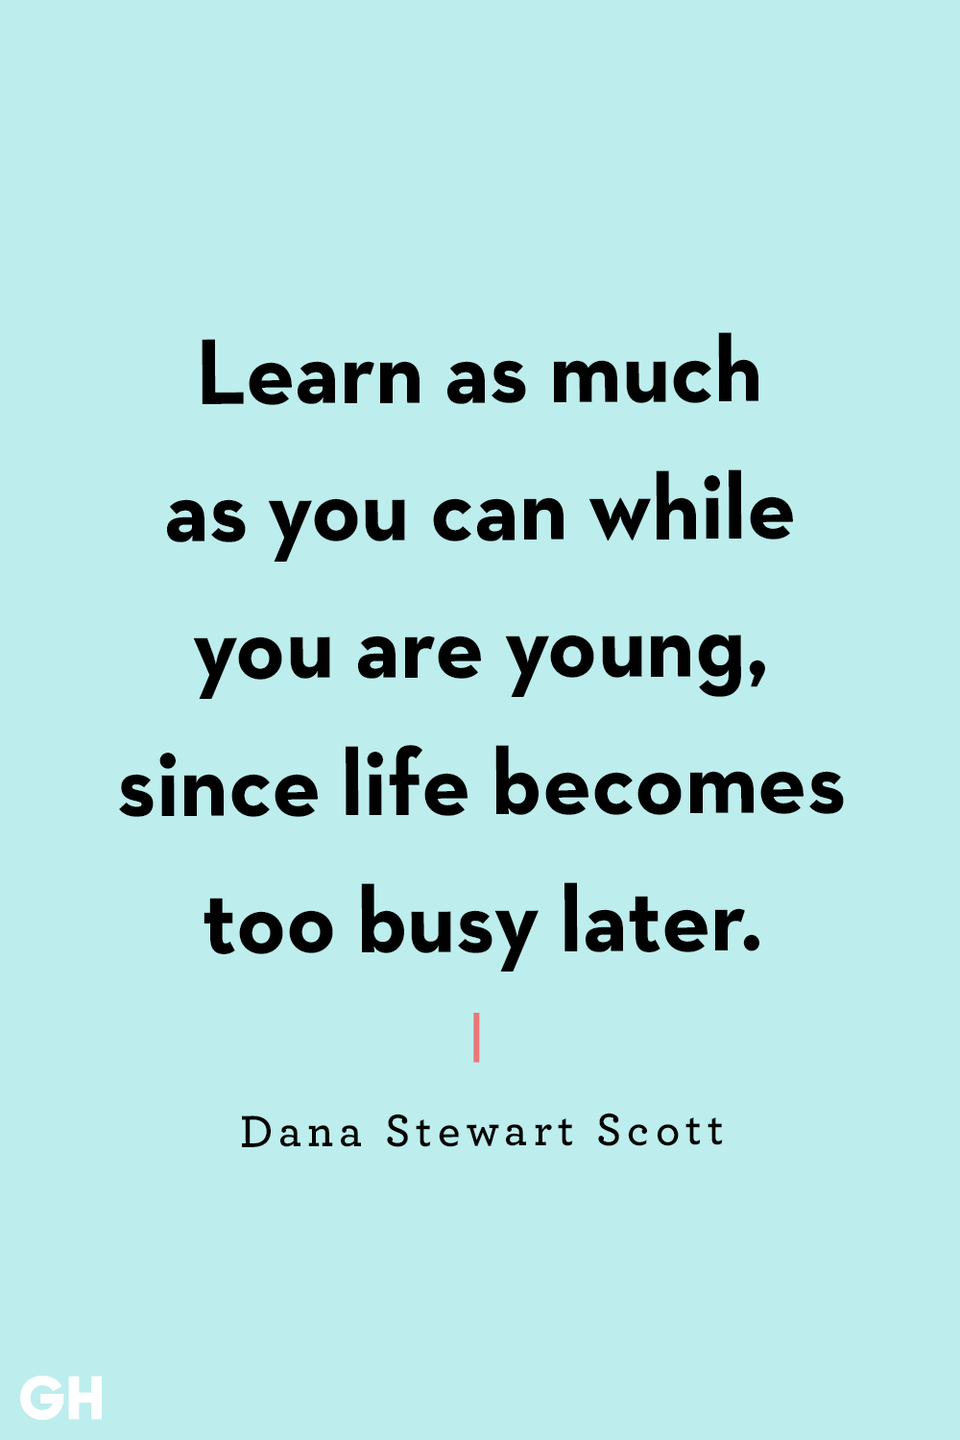 <p>Learn as much as you can while you are young, since life becomes too busy later.</p>